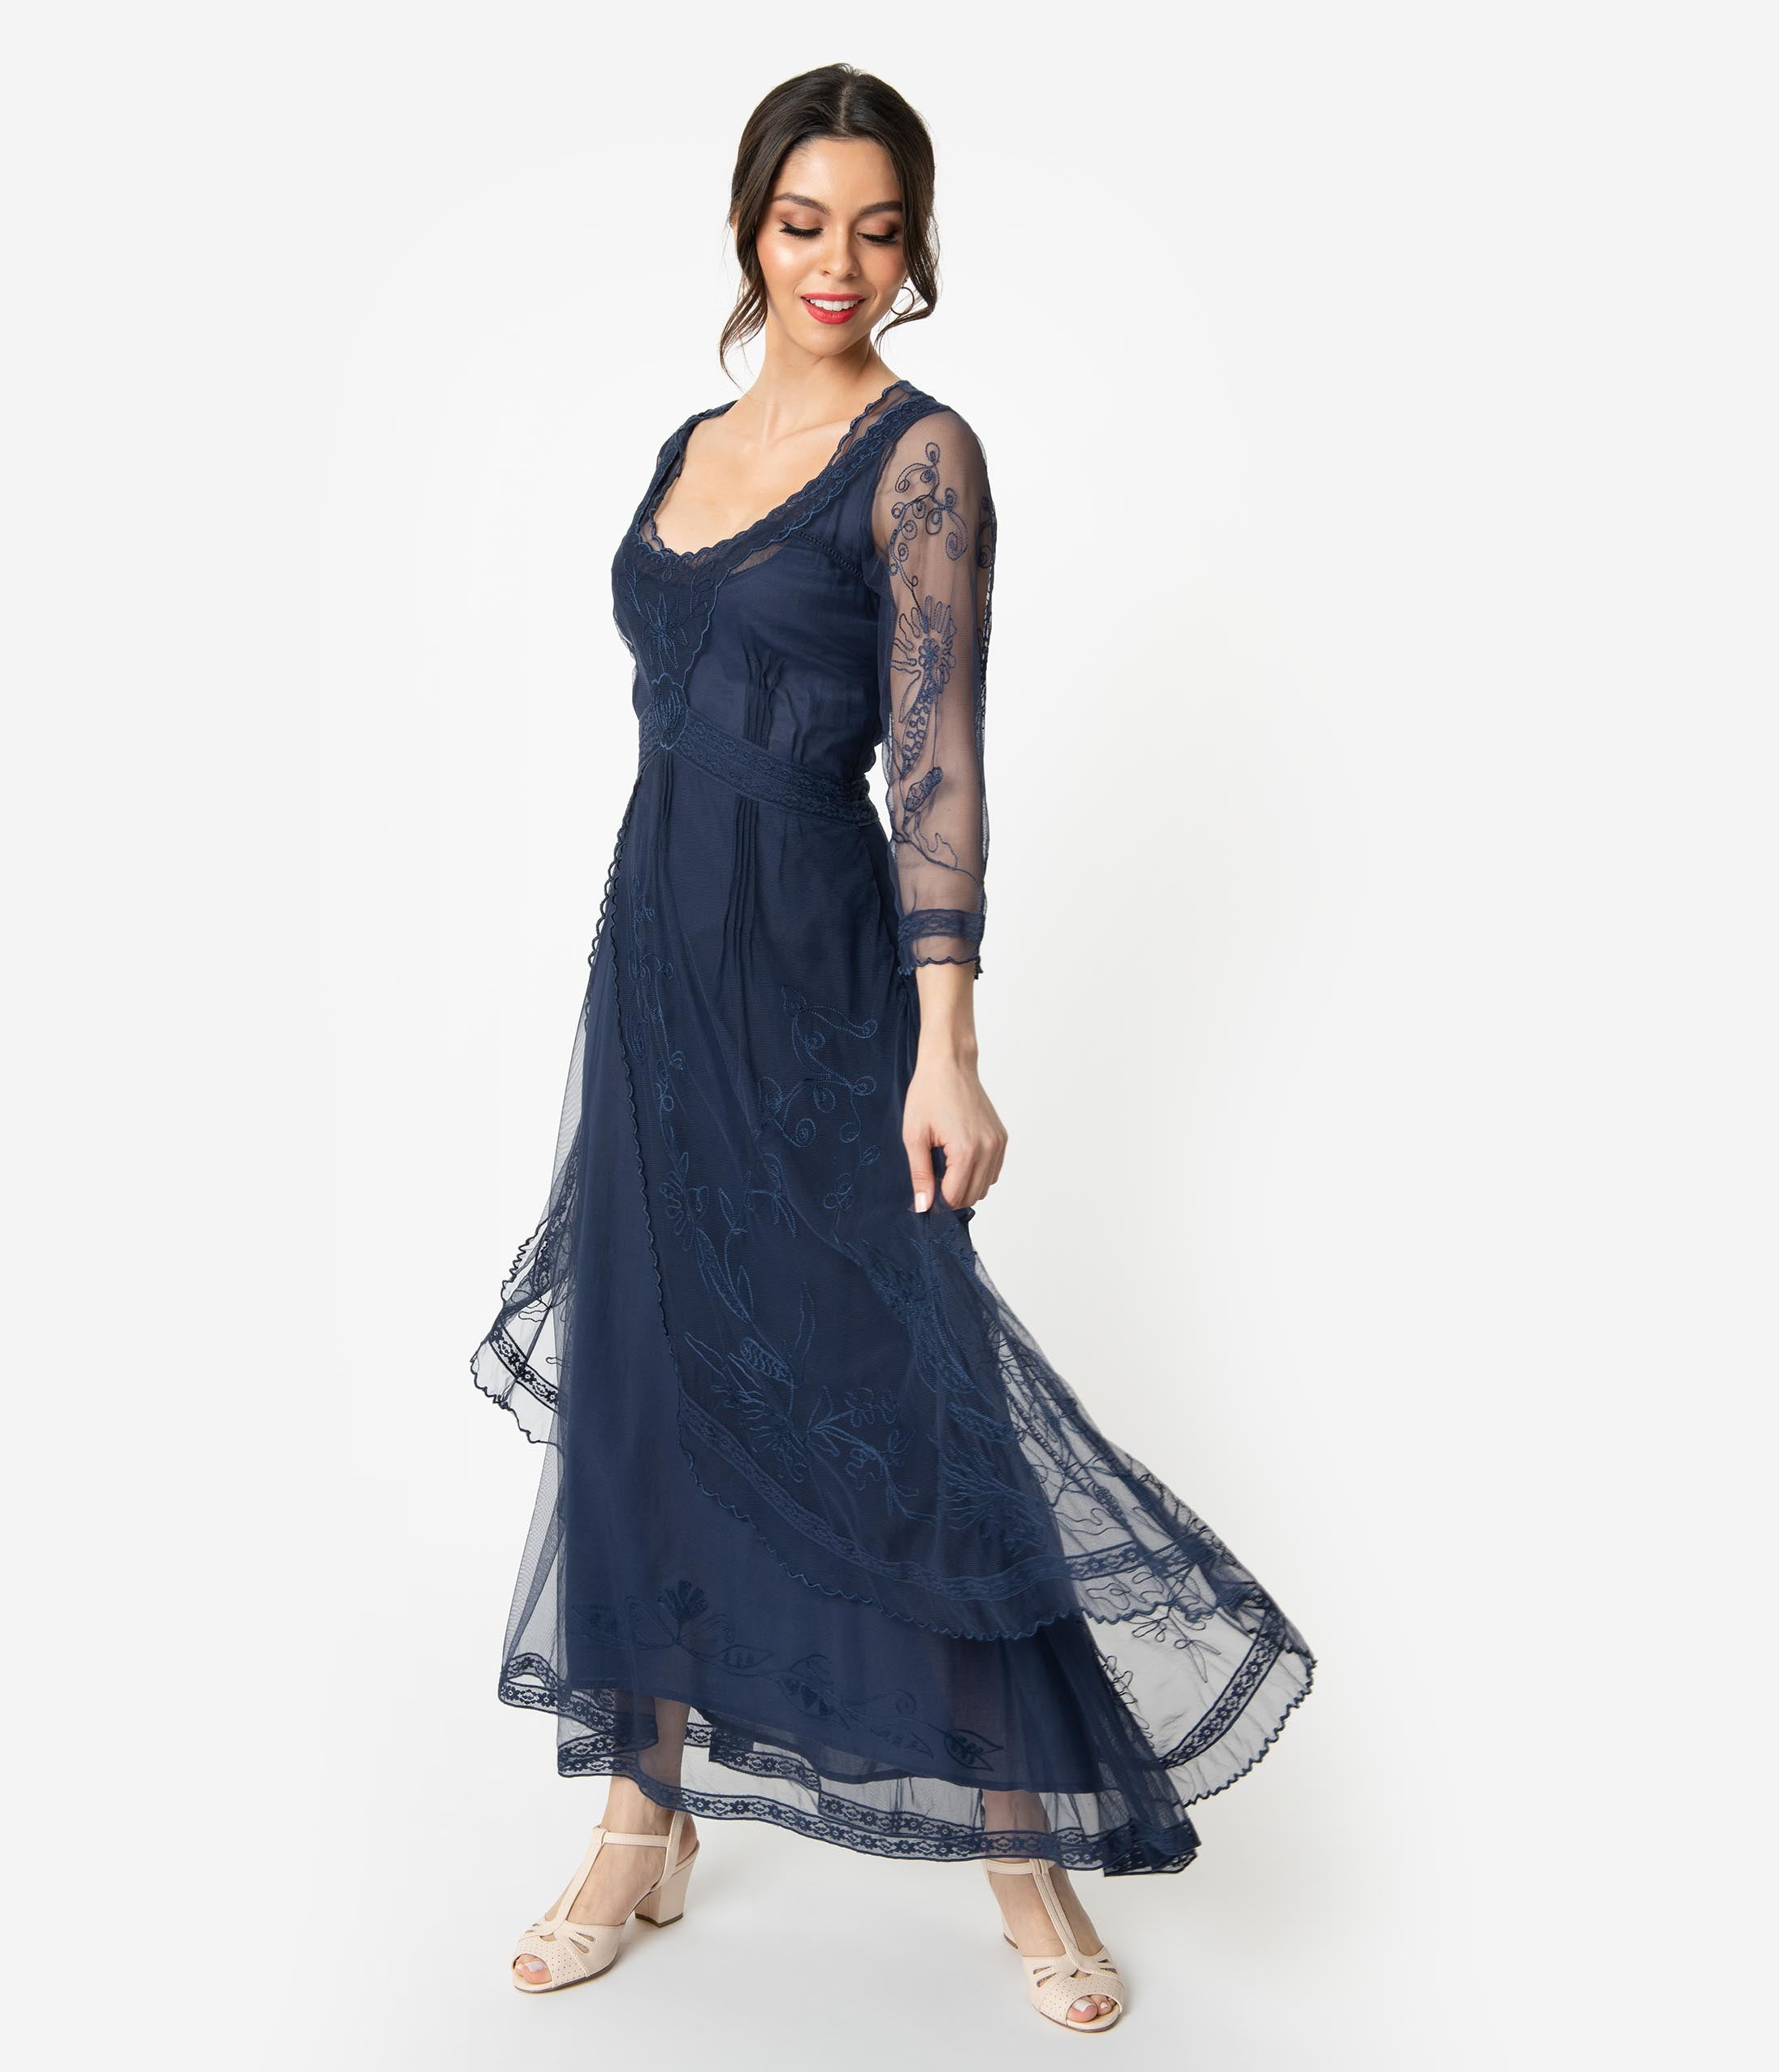 Edwardian Ladies Clothing – 1900, 1910s, Titanic Era Royal Blue Embroidered Tulle Downton Abbey Edwardian Tea Party Flapper Dress $258.00 AT vintagedancer.com